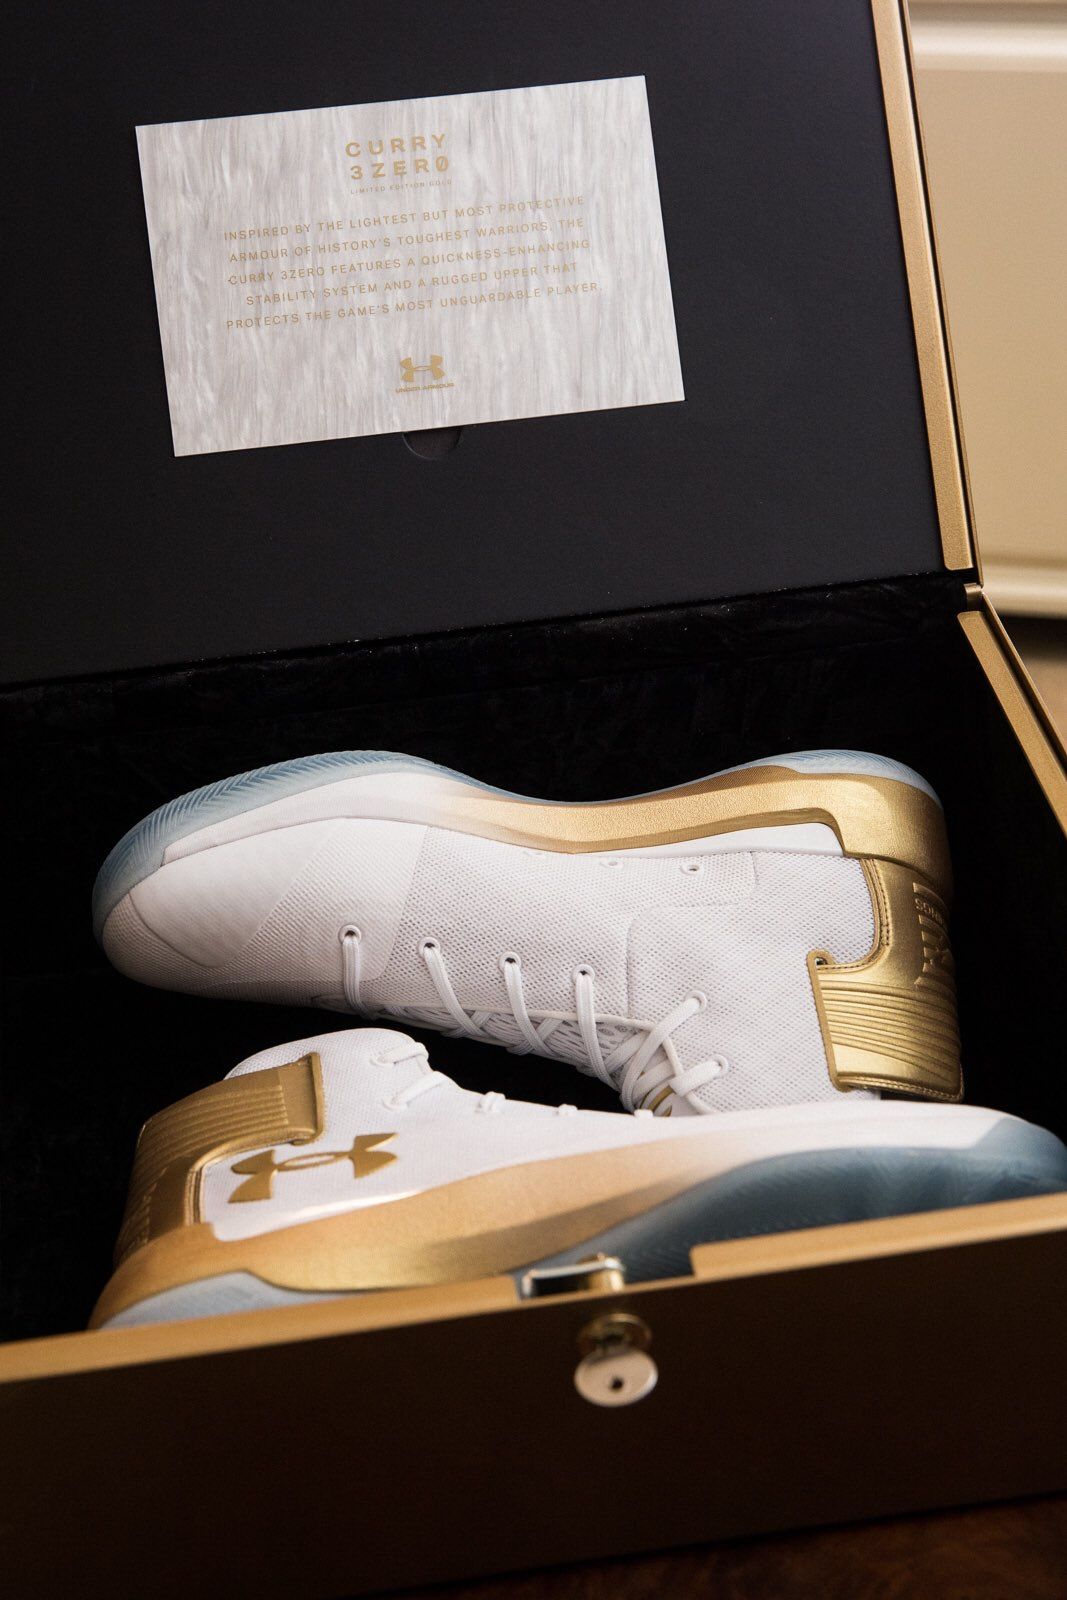 Stephen Curry and Under Armor team up with Footlocker for the scavenger  hunt limited edition release of the Gold Curry3Zero in NYC on Saturday  March 4th. ac2b56e32